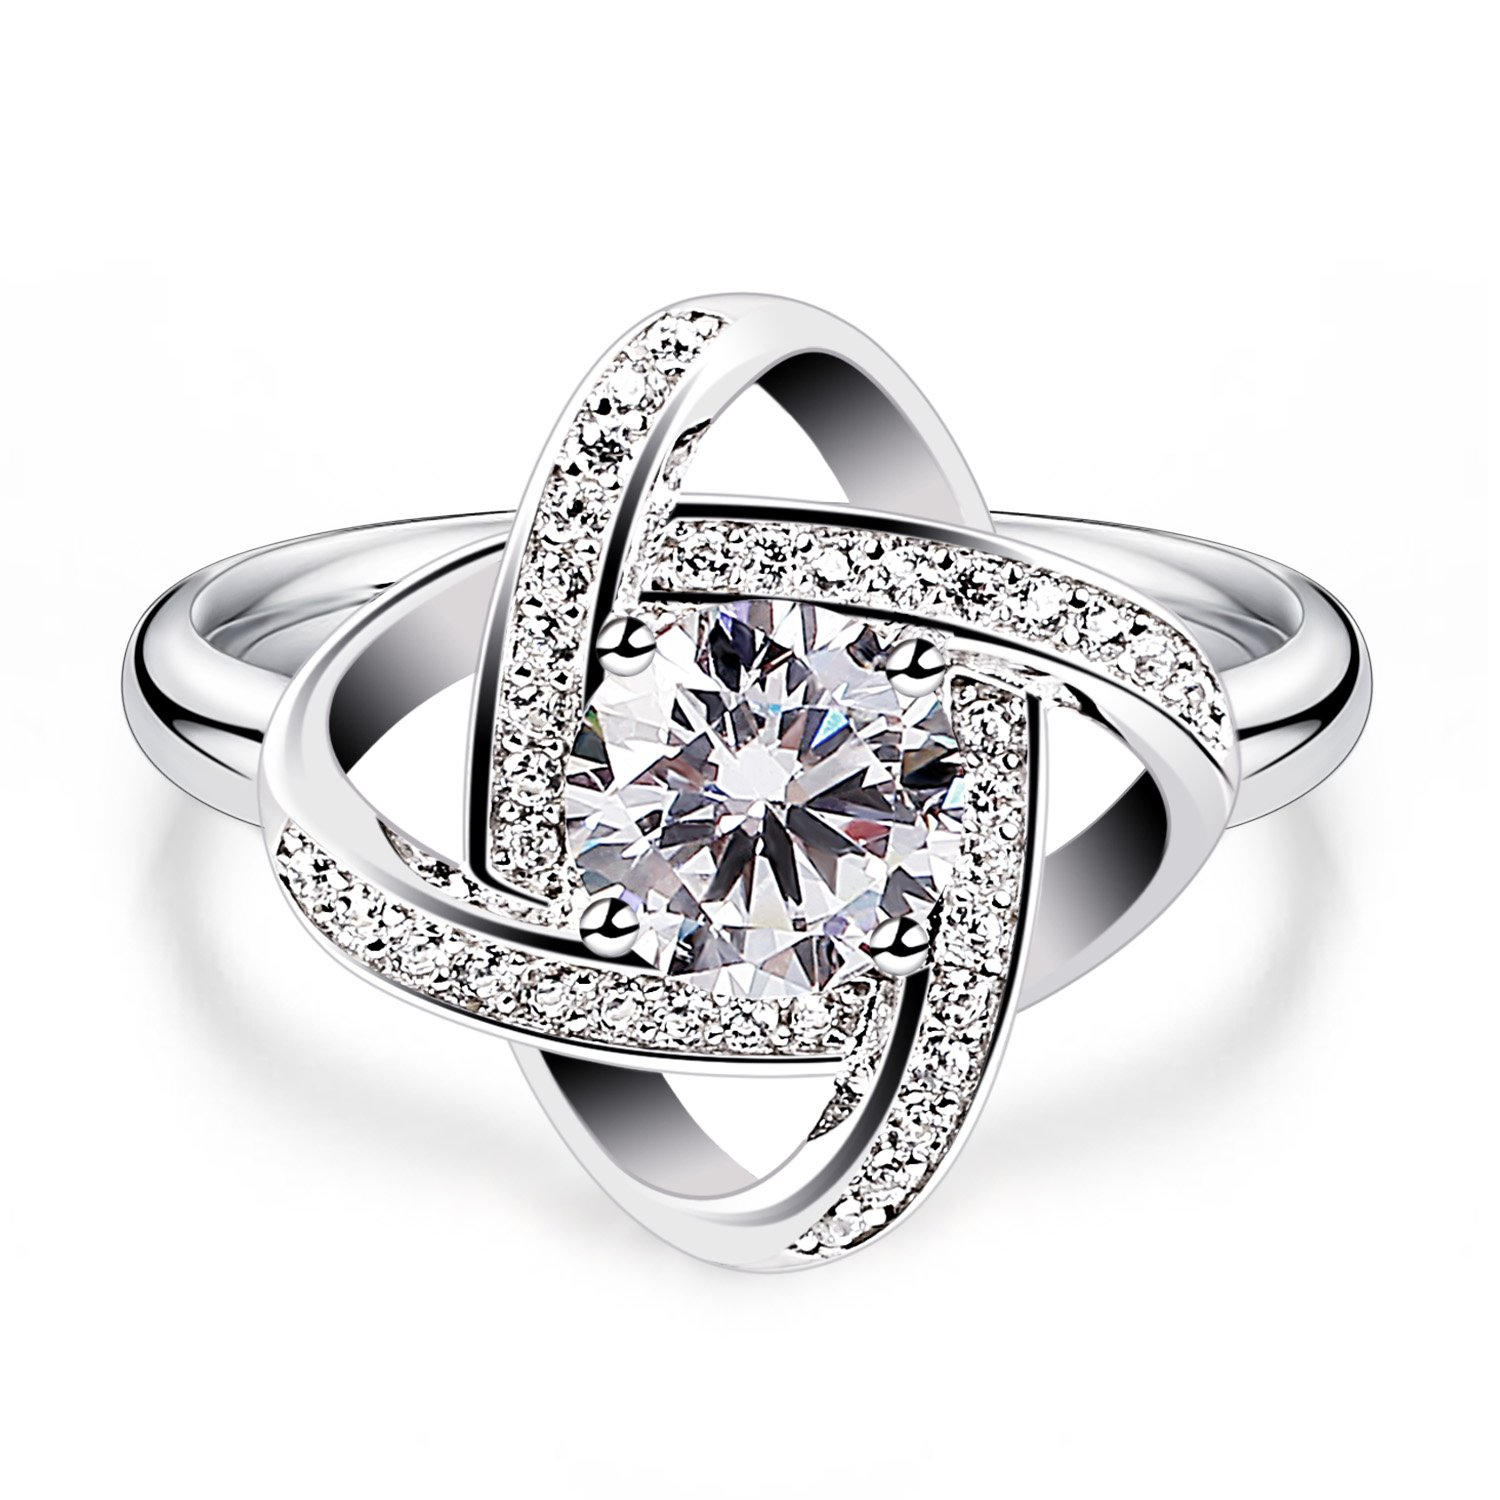 B.Catcher Women's Ring Adjustable 925 Sterling Silver Cubic Zirconia Valentine's Gift for Her by B.Catcher (Image #1)